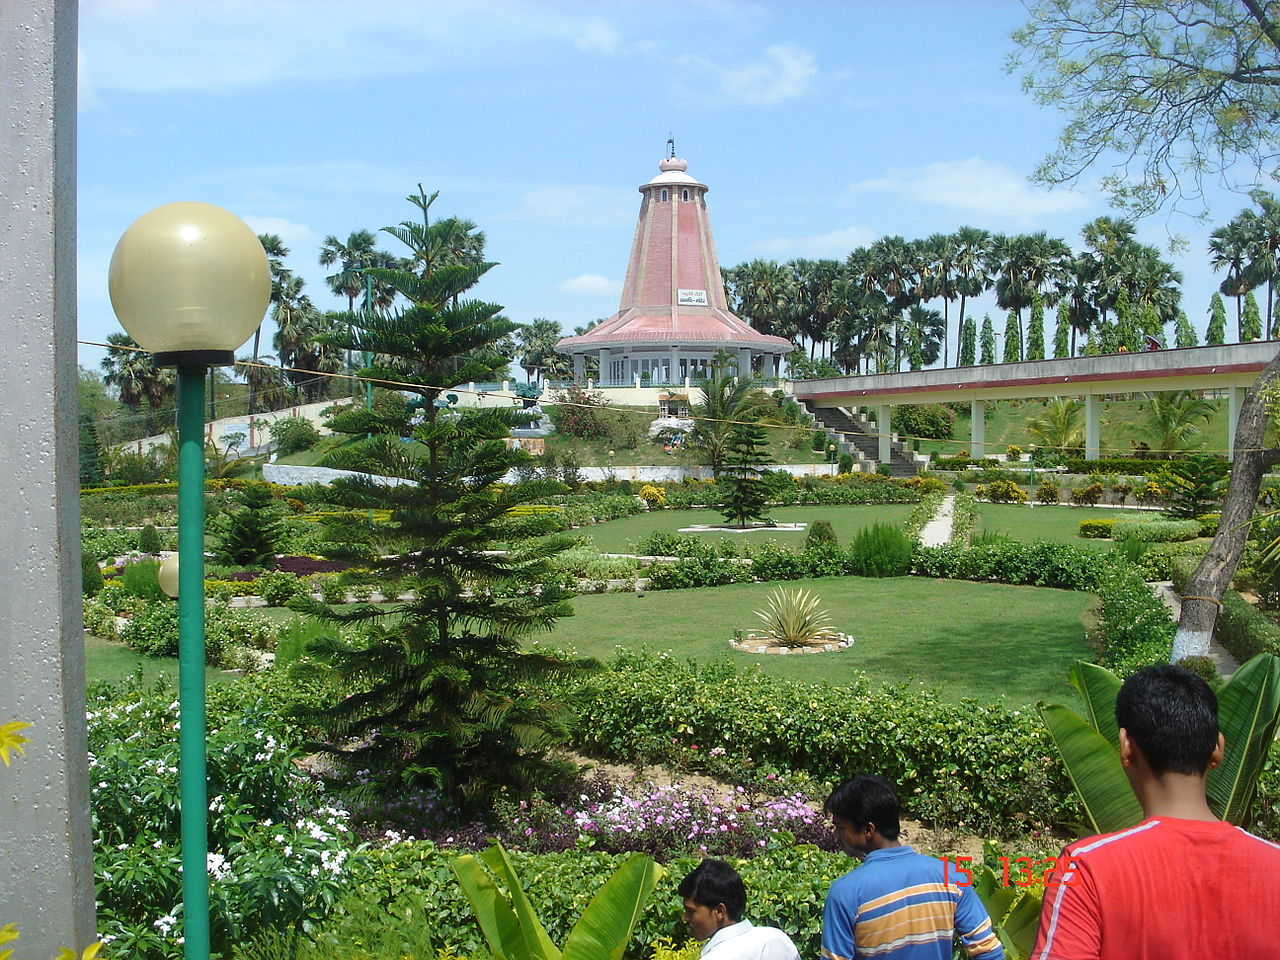 Kuppaghat - Top Sight Seeing Destination in the Silk City of Bihar